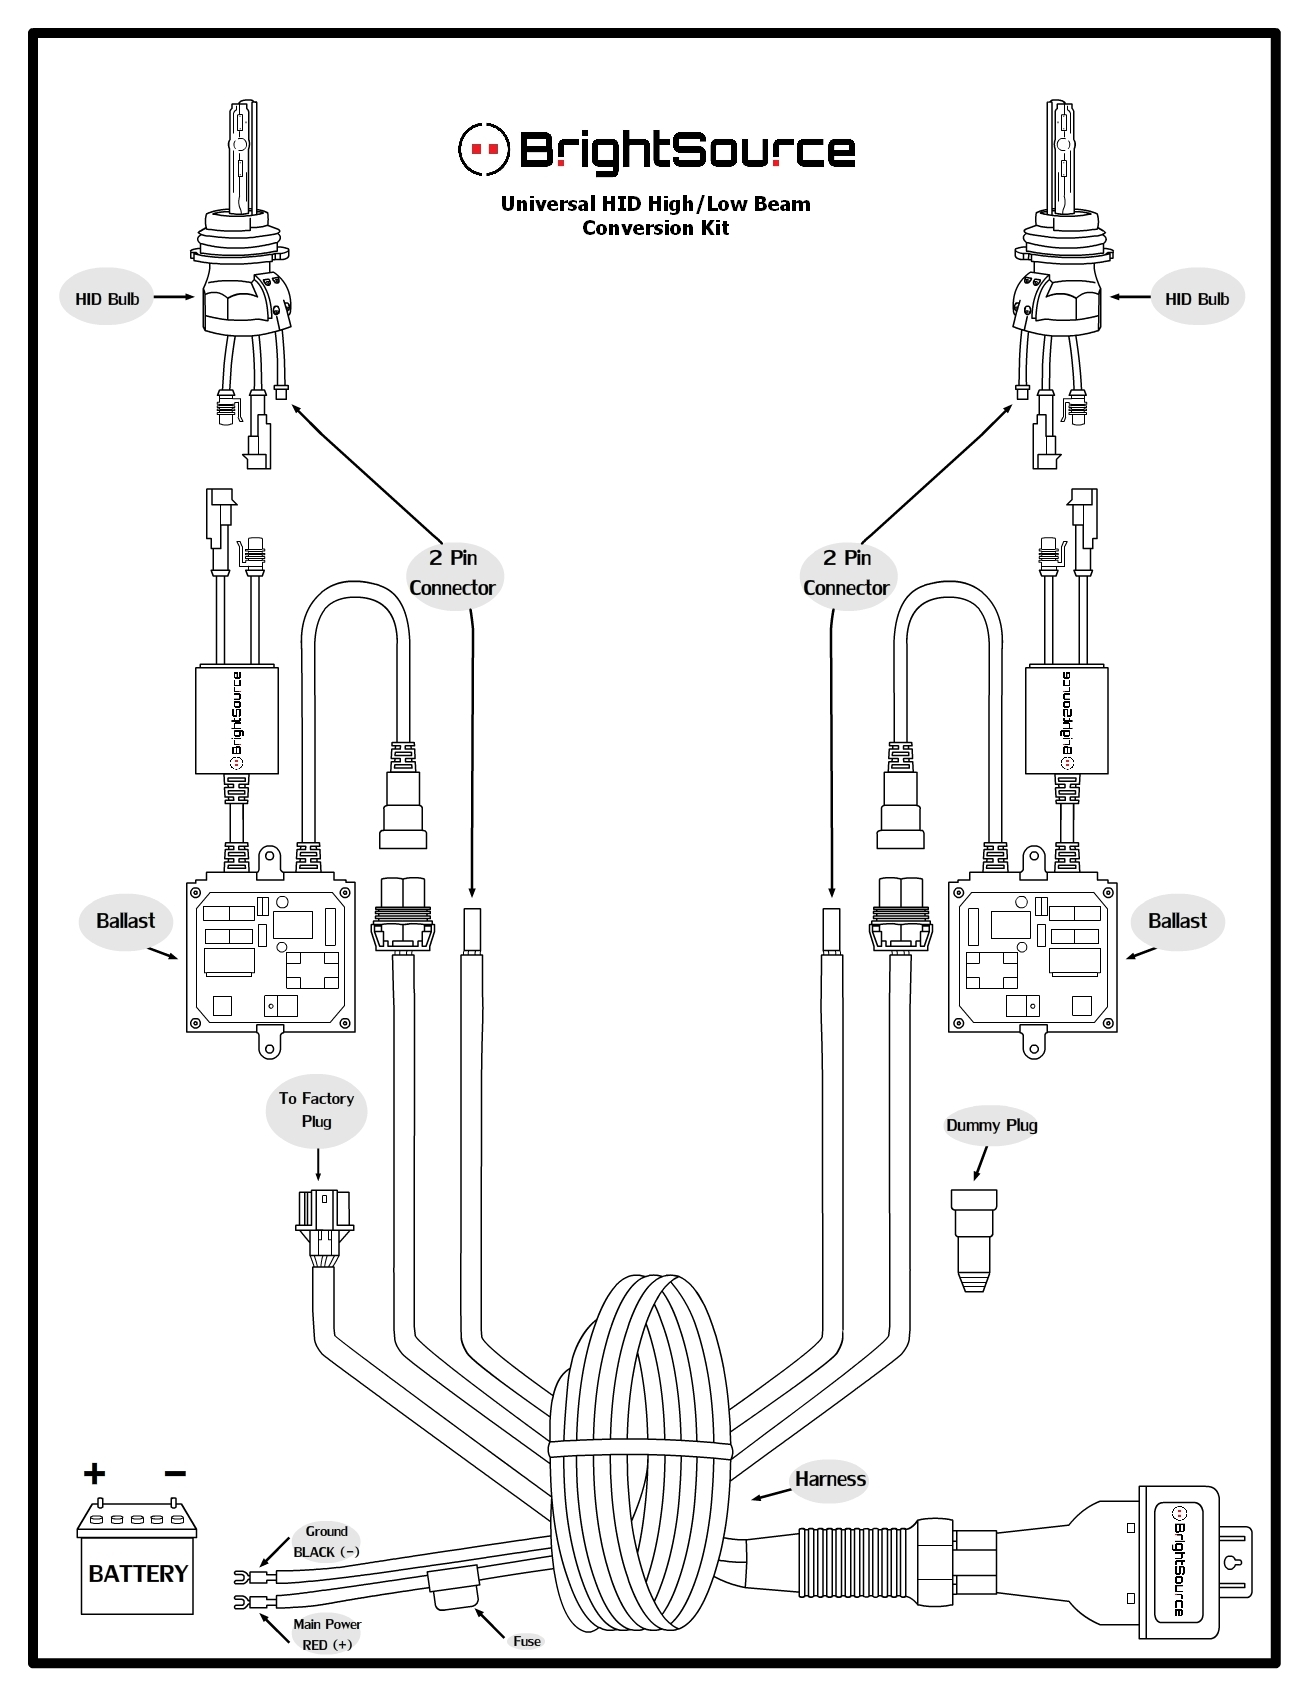 Install Diagrams Honda Motorcycle Hid Headlight Wiring Diagram Universal High Low Beam